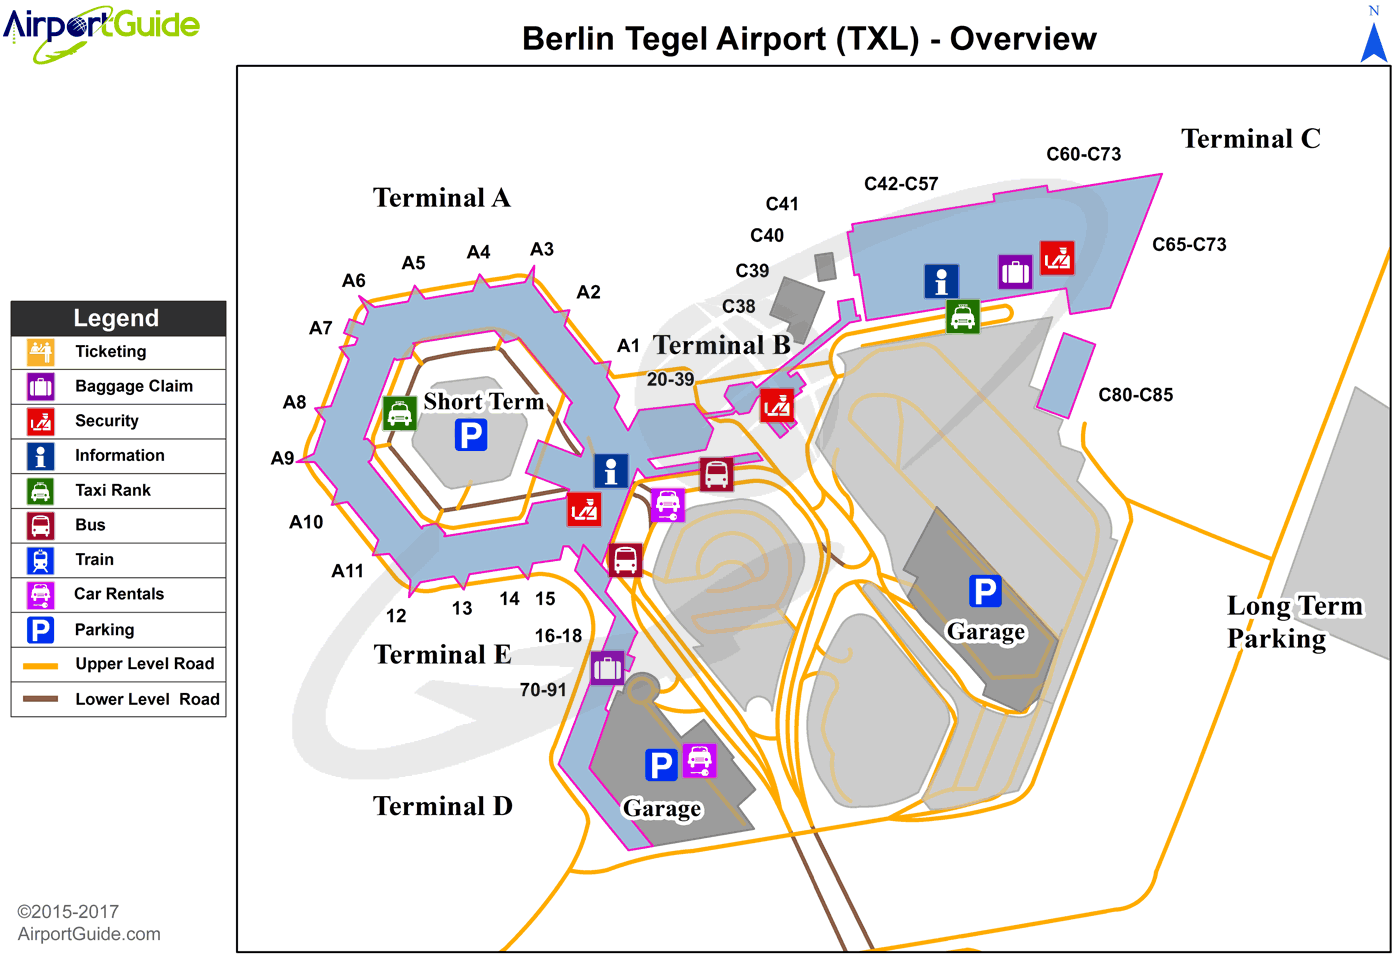 Hotels Near Txl Berlin Airport